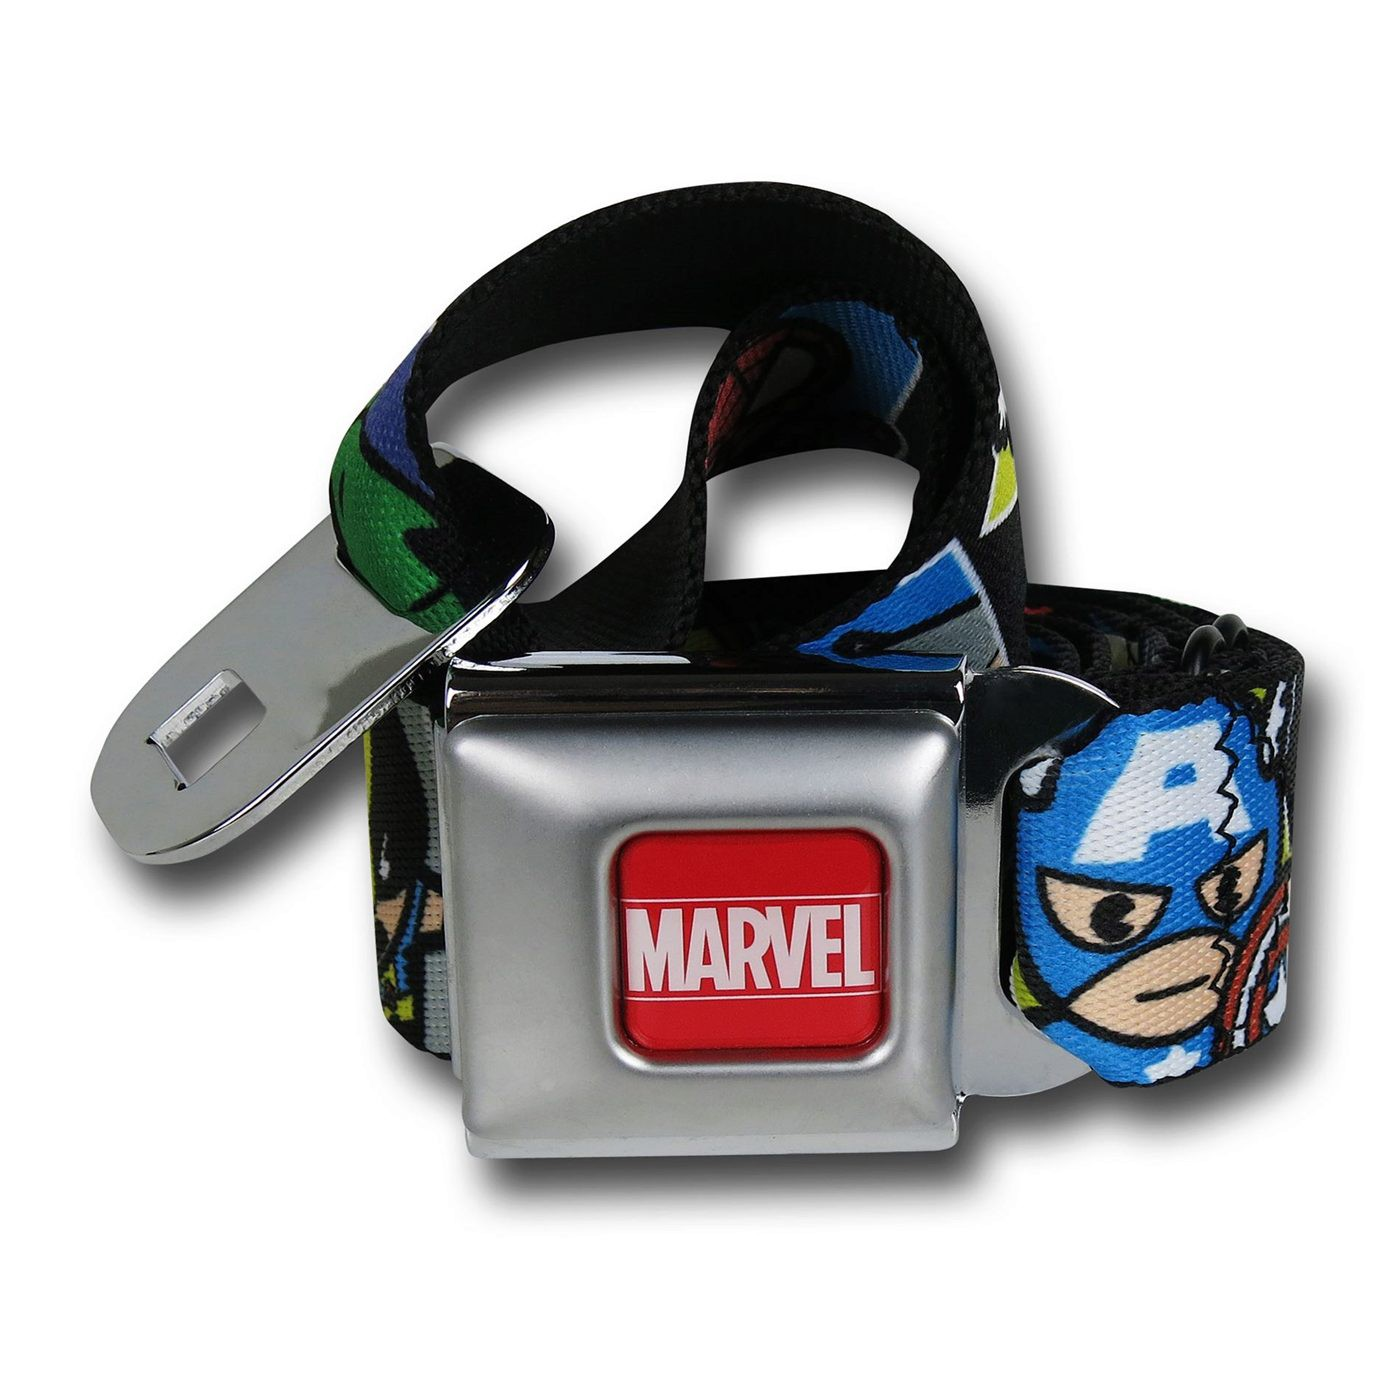 Marvel Kawaii Seatbelt Belt